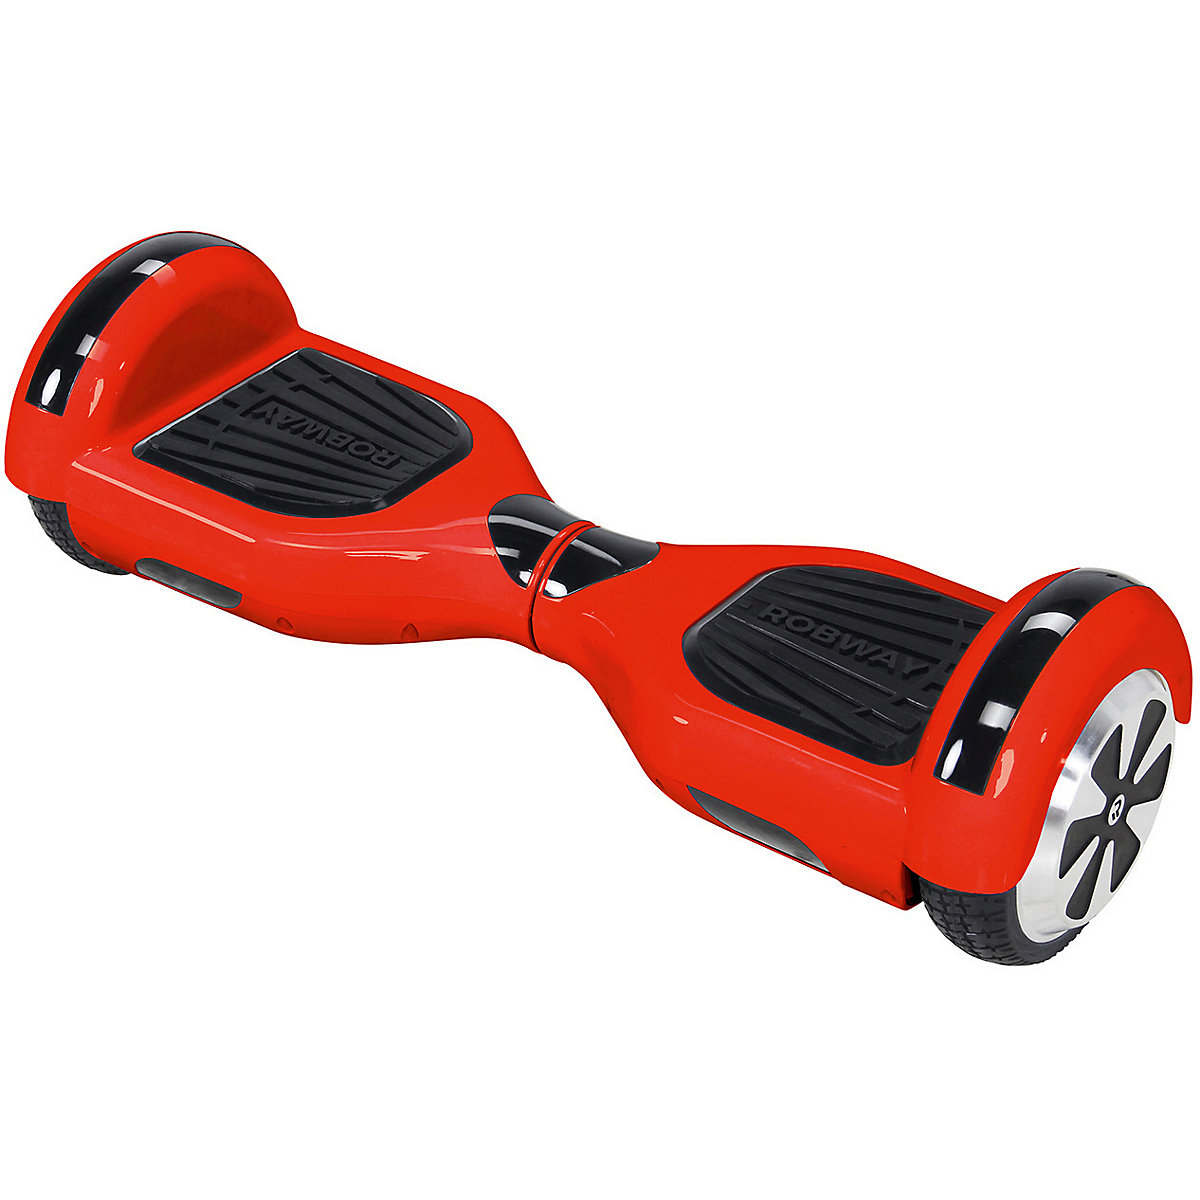 e balance hoverboard robway w1 6 5 zoll mit app funktion rot robway mytoys. Black Bedroom Furniture Sets. Home Design Ideas